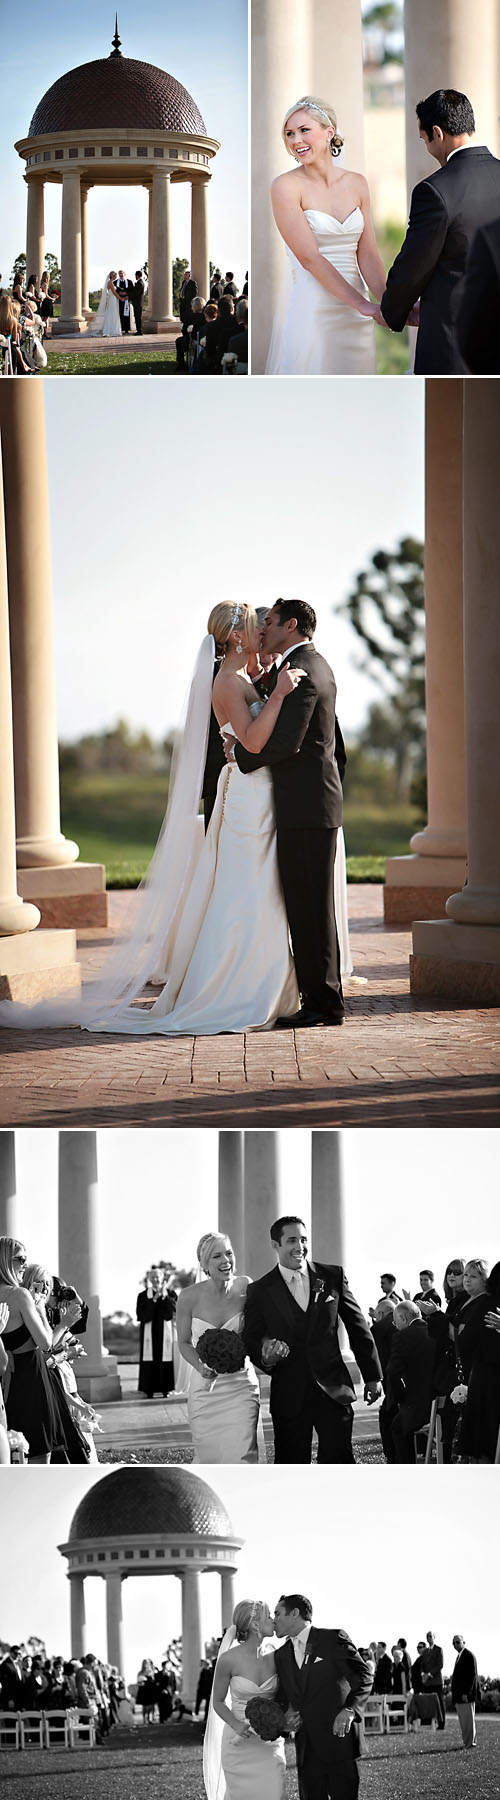 classic and elegant real wedding at The Resort at Pelican Hill, images by Jasmine Star Photography